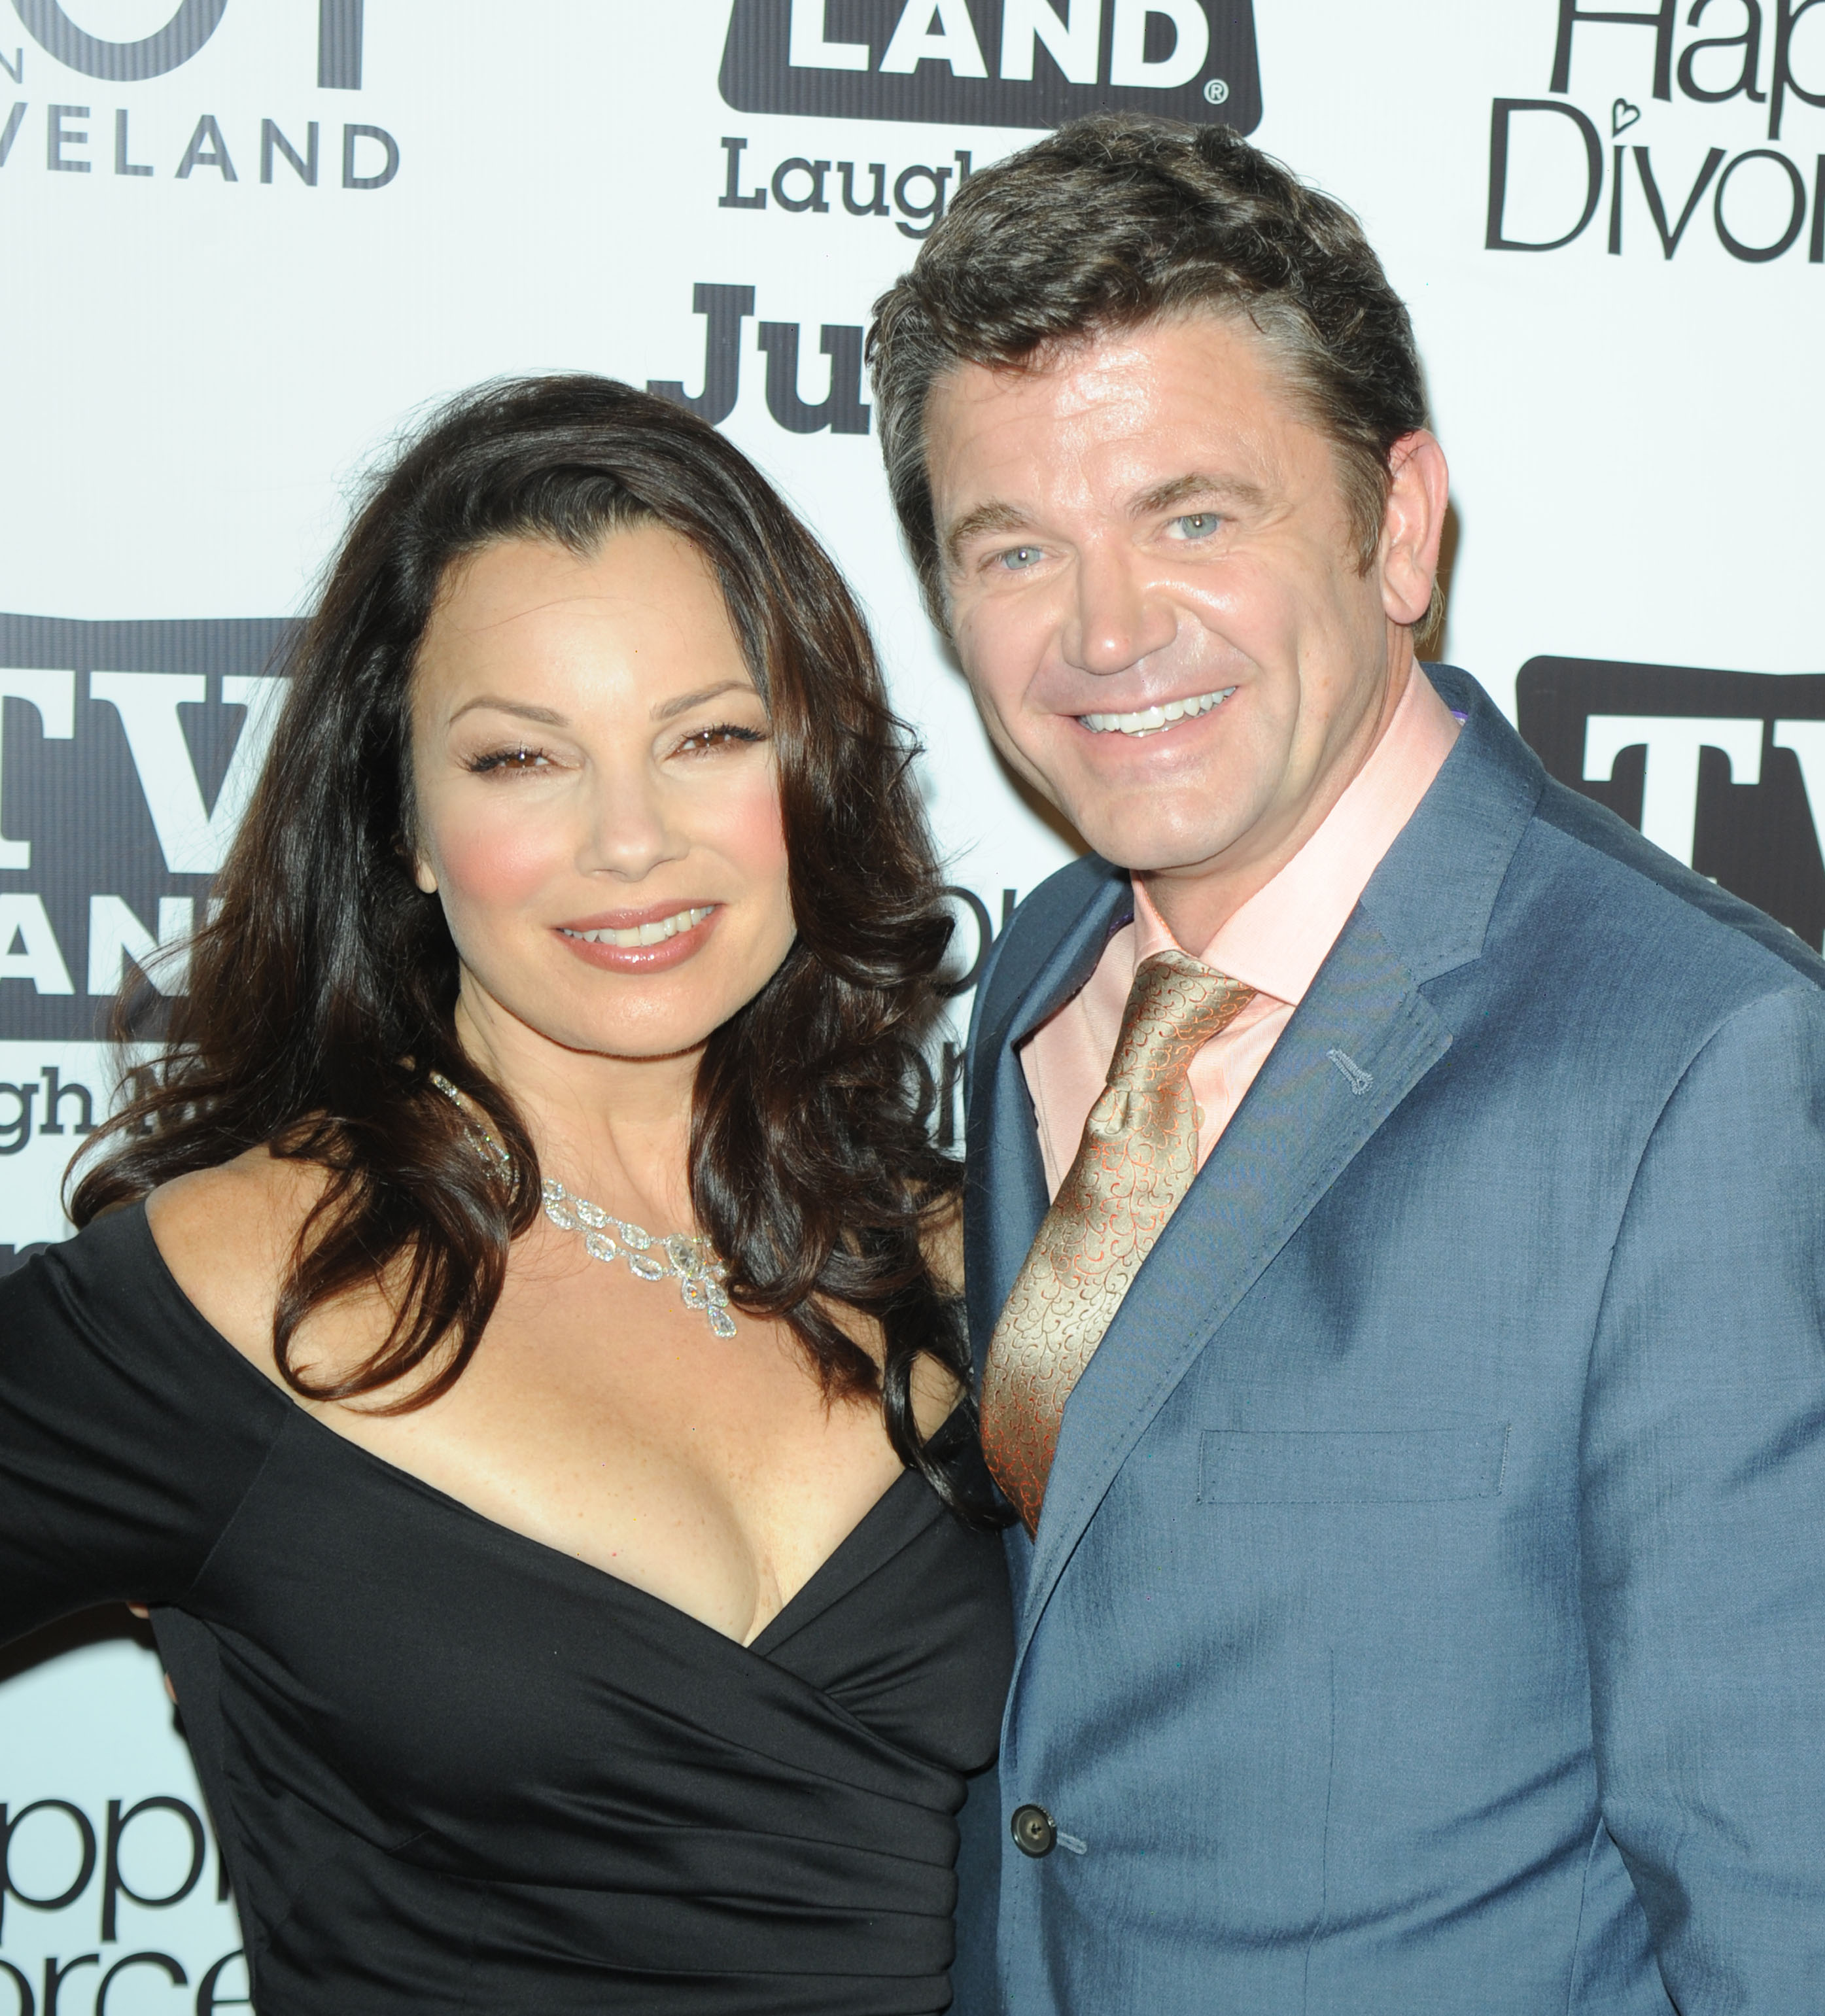 John Michael Higgins Recalls Working With 'Deep' and 'Soulful' Fran Drescher on 'Happily Divorced'